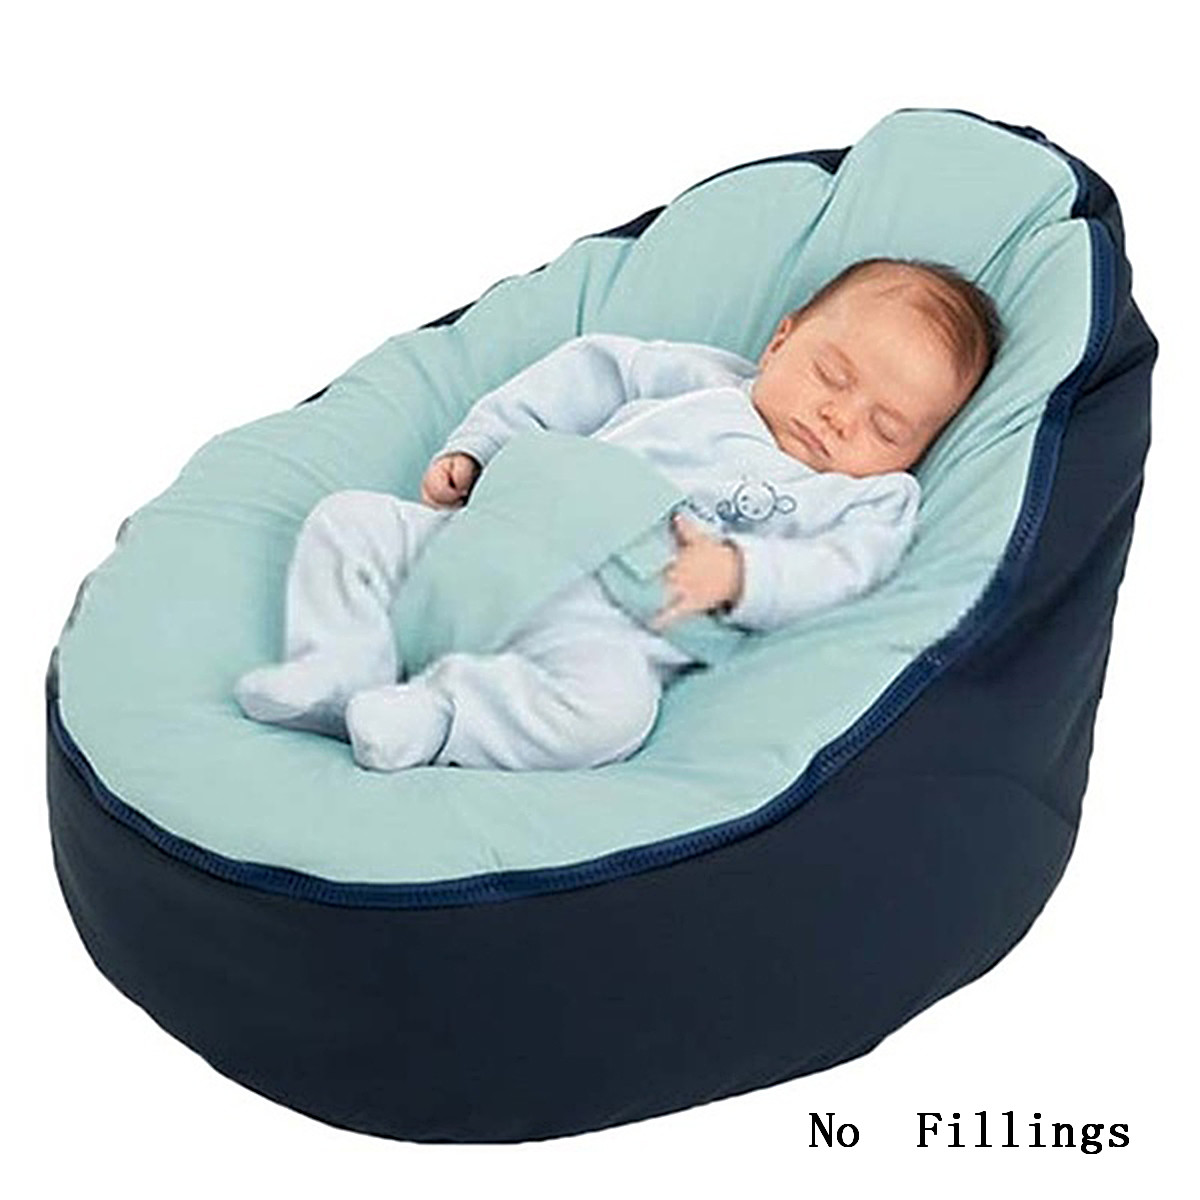 Bed-Cover Infant-Bean-Bag Baby-Chair Snuggle-Bed Safety-Protection Feeding Soft Without